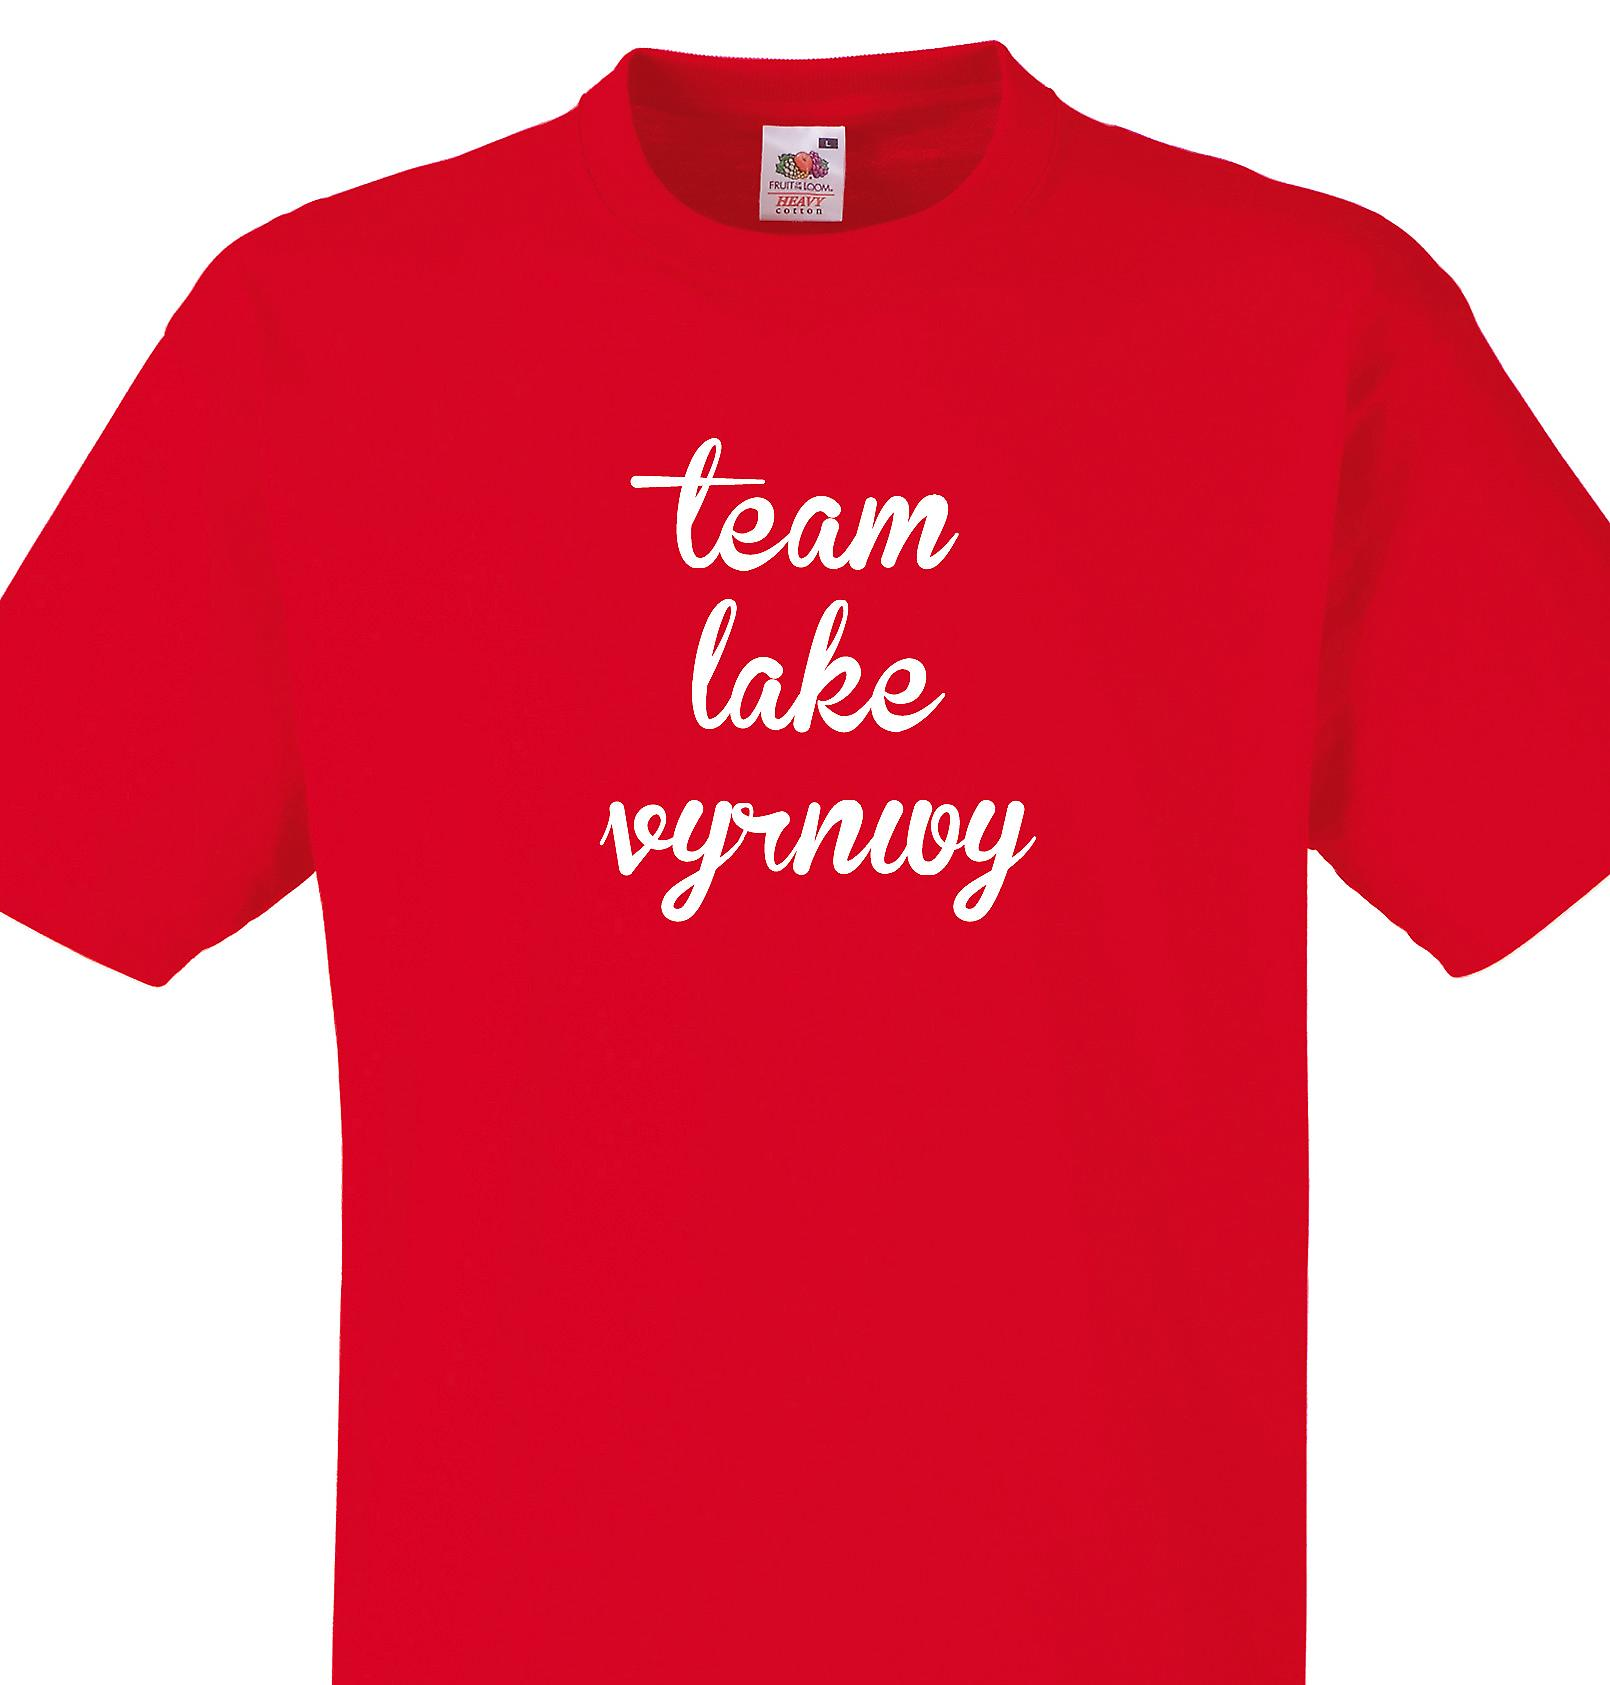 Team Lake vyrnwy Red T shirt